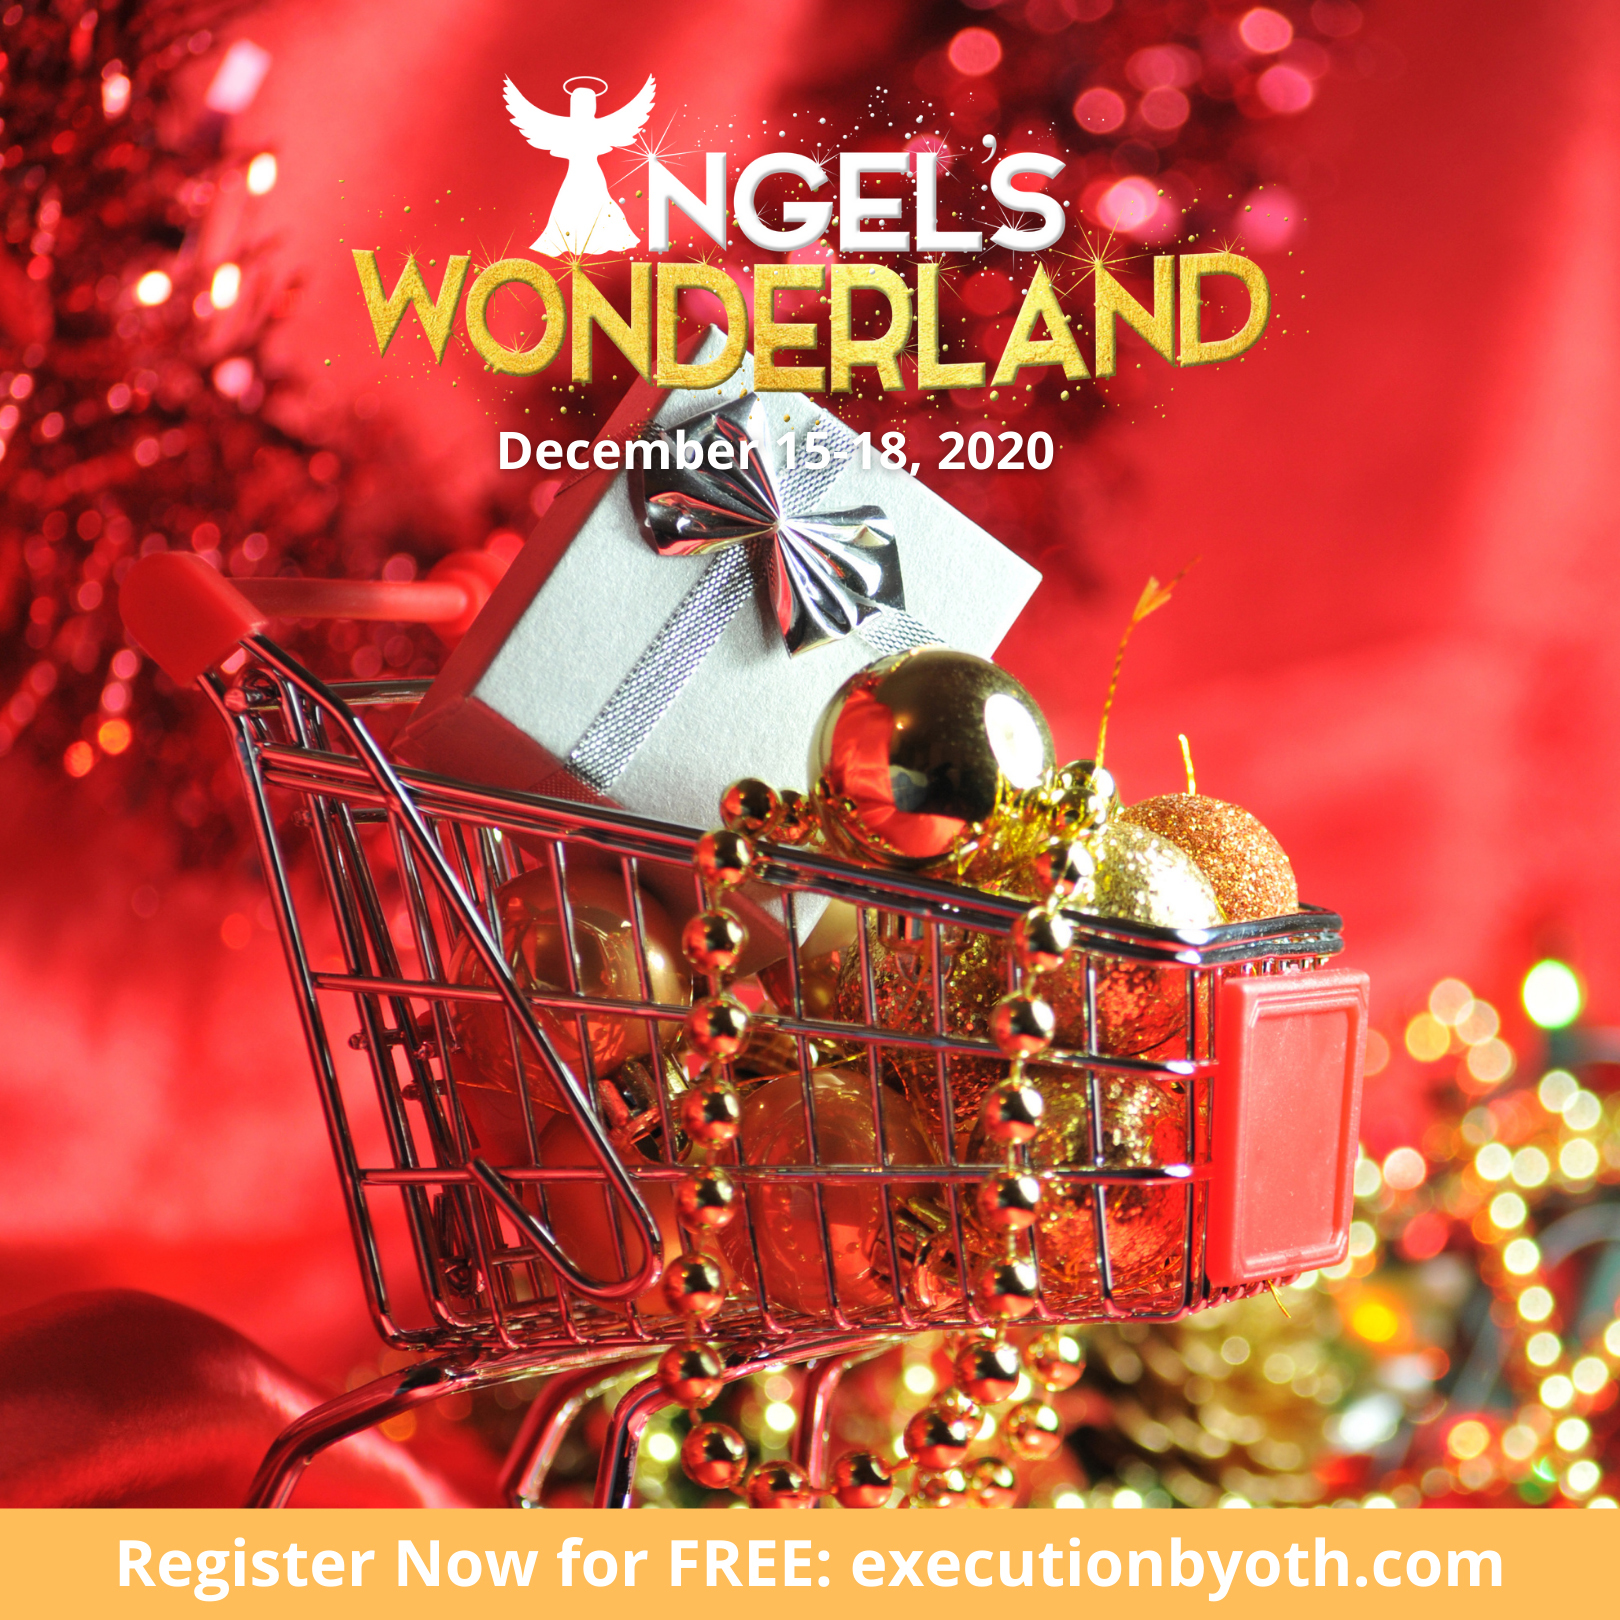 ANGEL'S WONDERLAND IS COMING TO TOWN